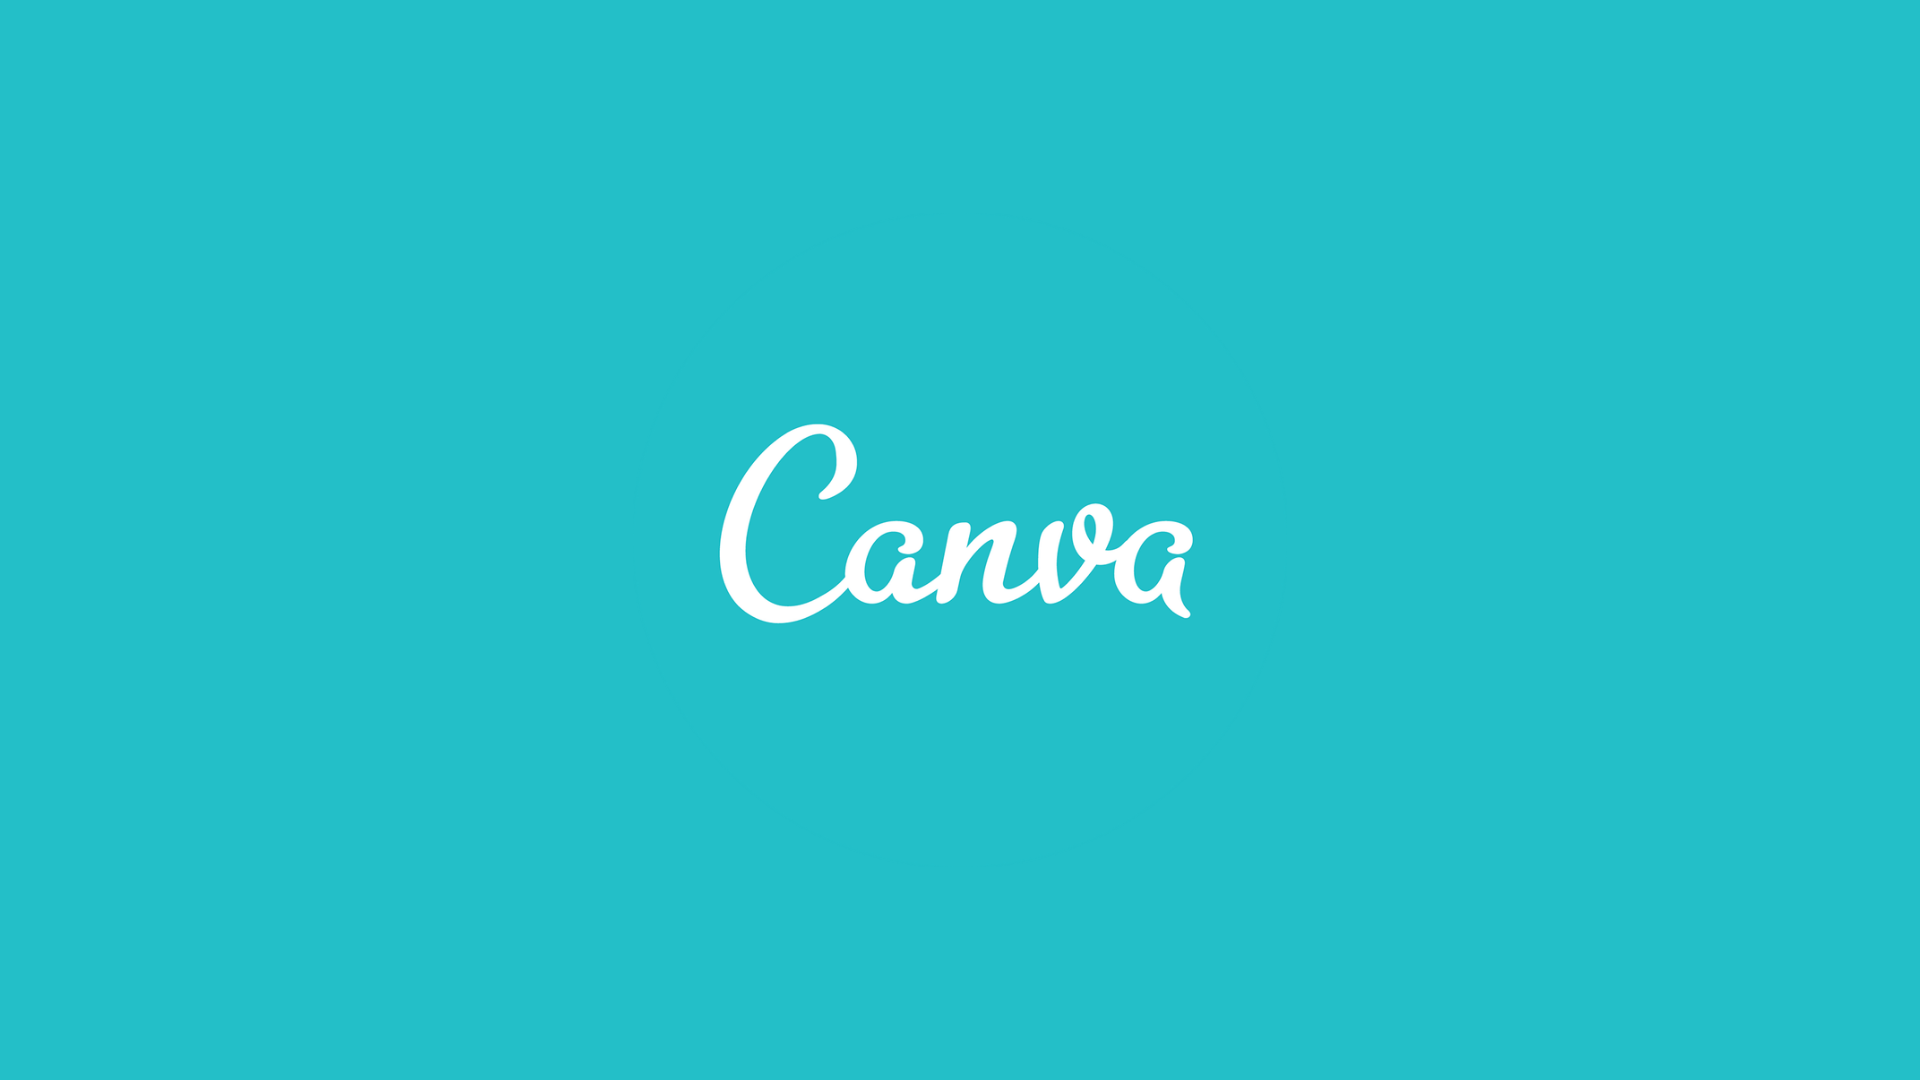 About Canva